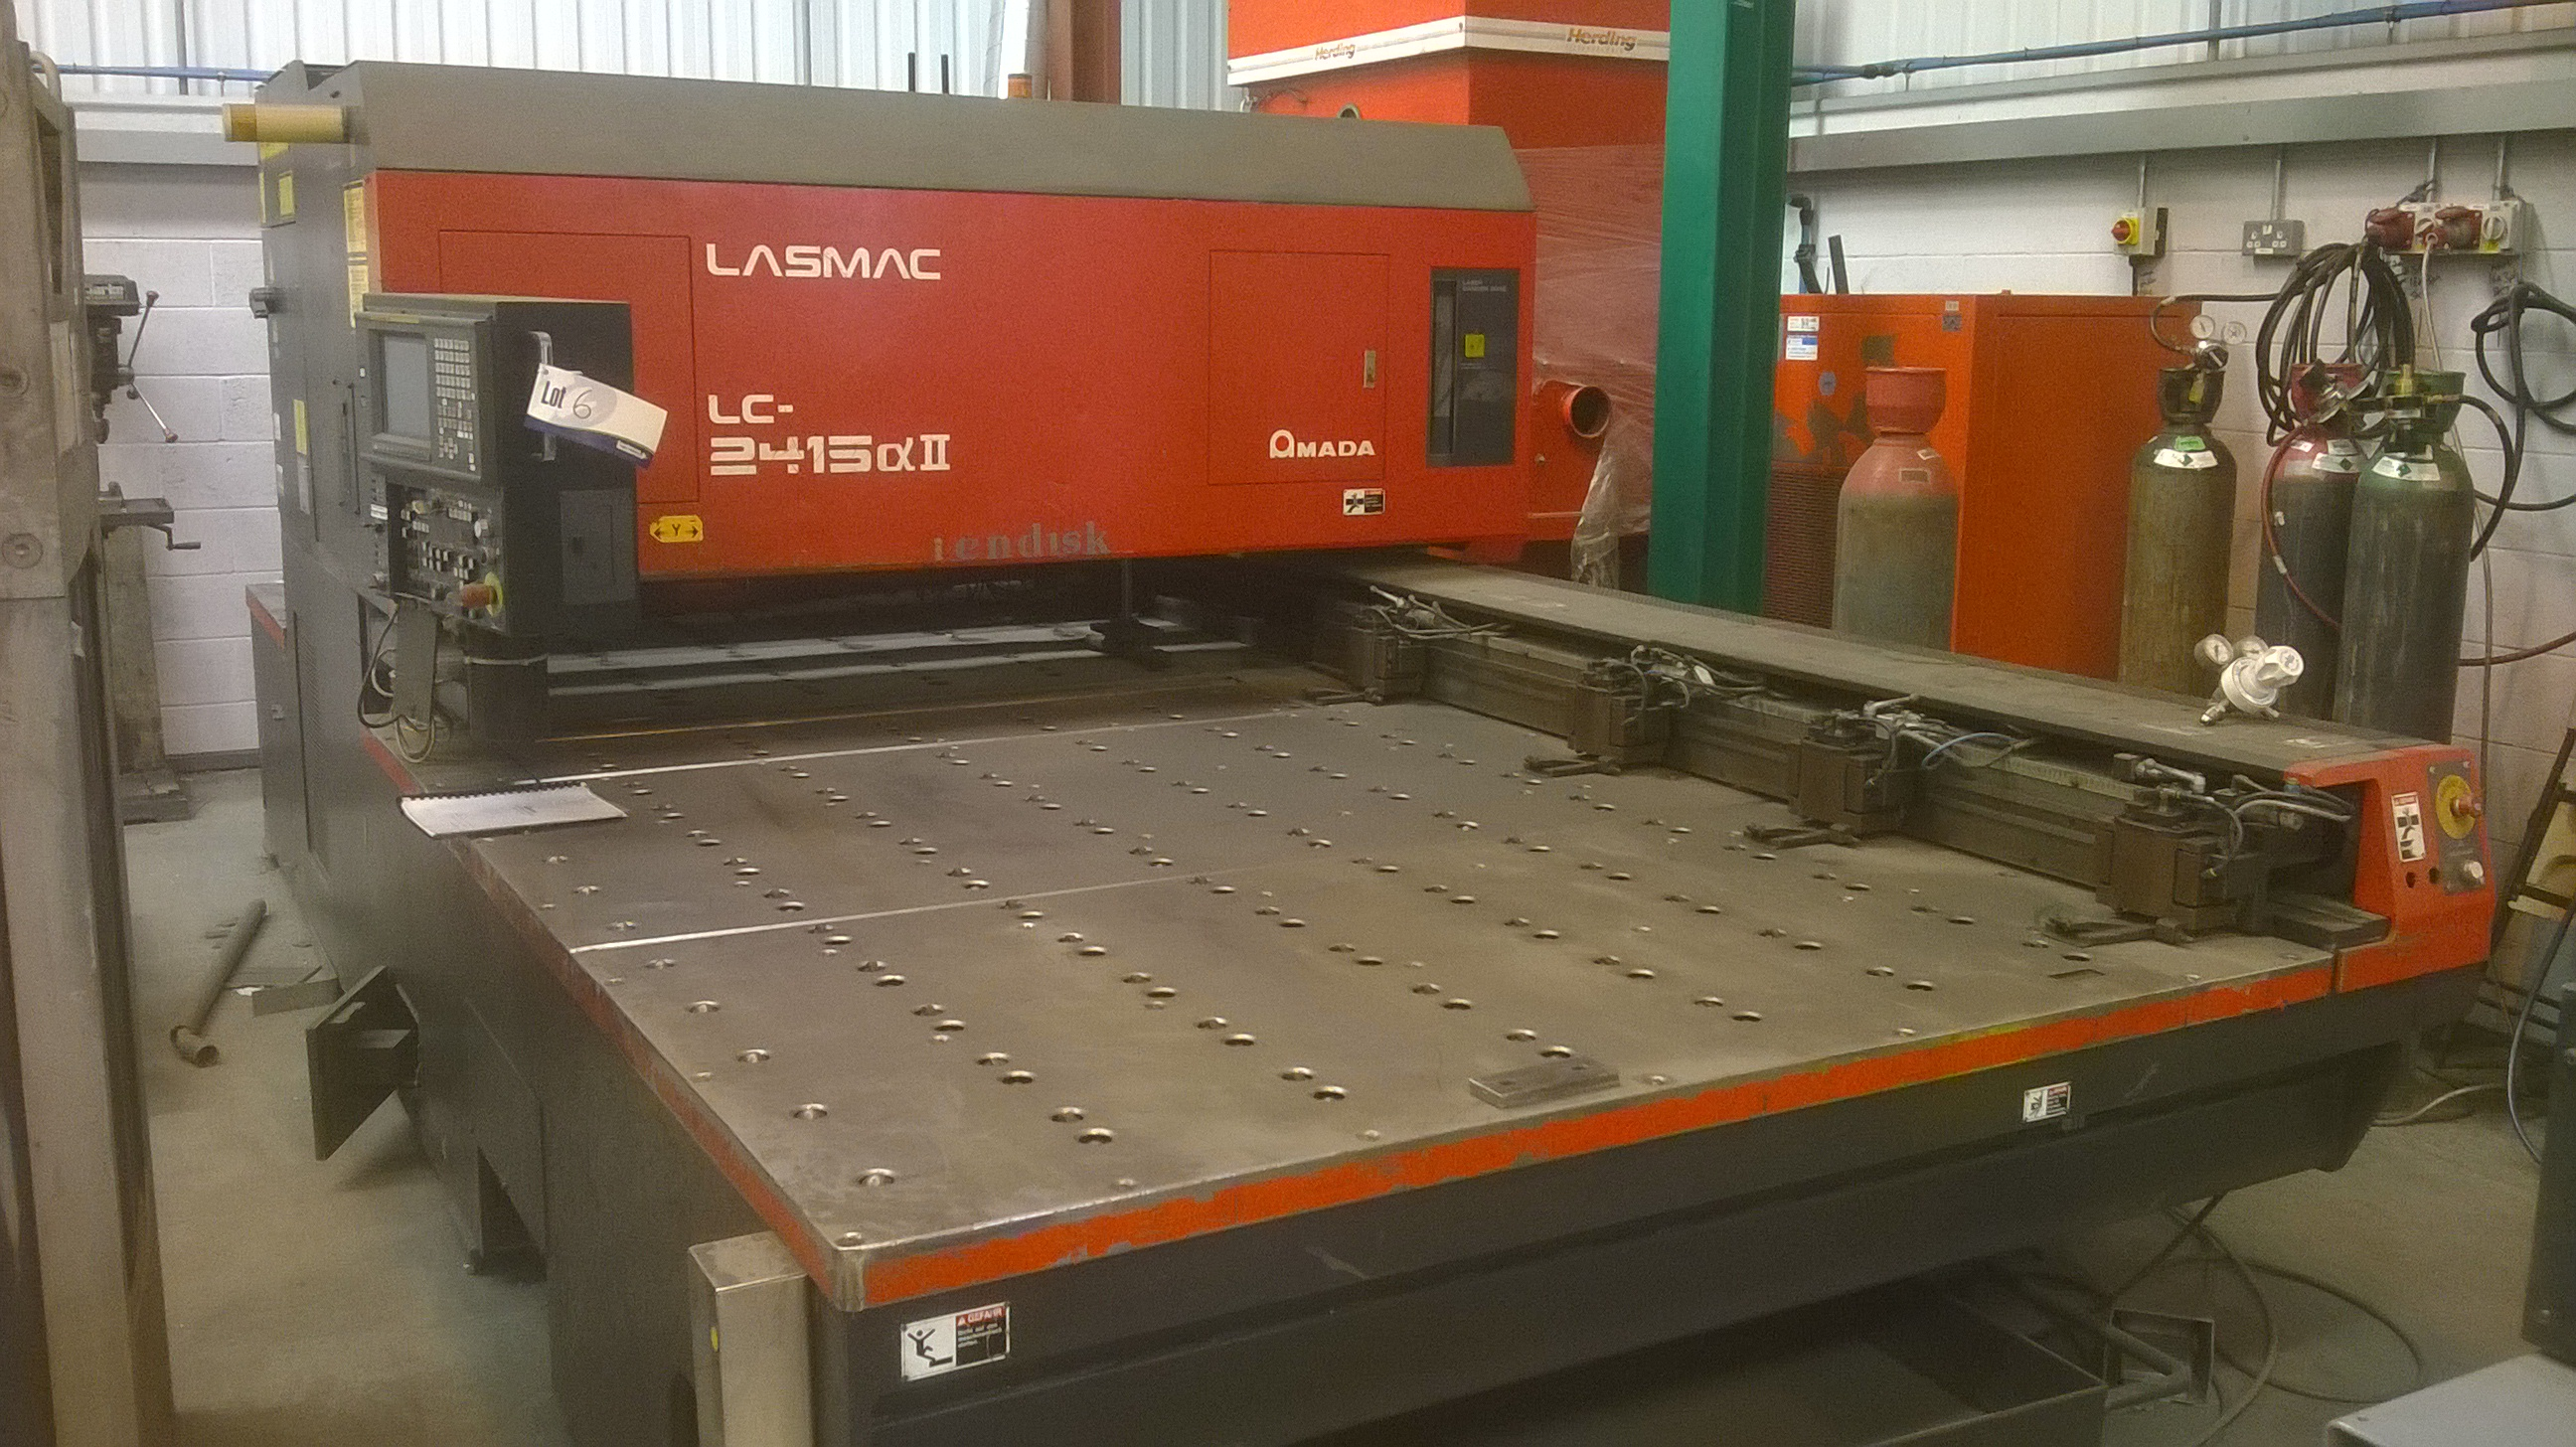 AMADA LC2415A2 CNC Laser Cutter, Serial Number: 1241 5044